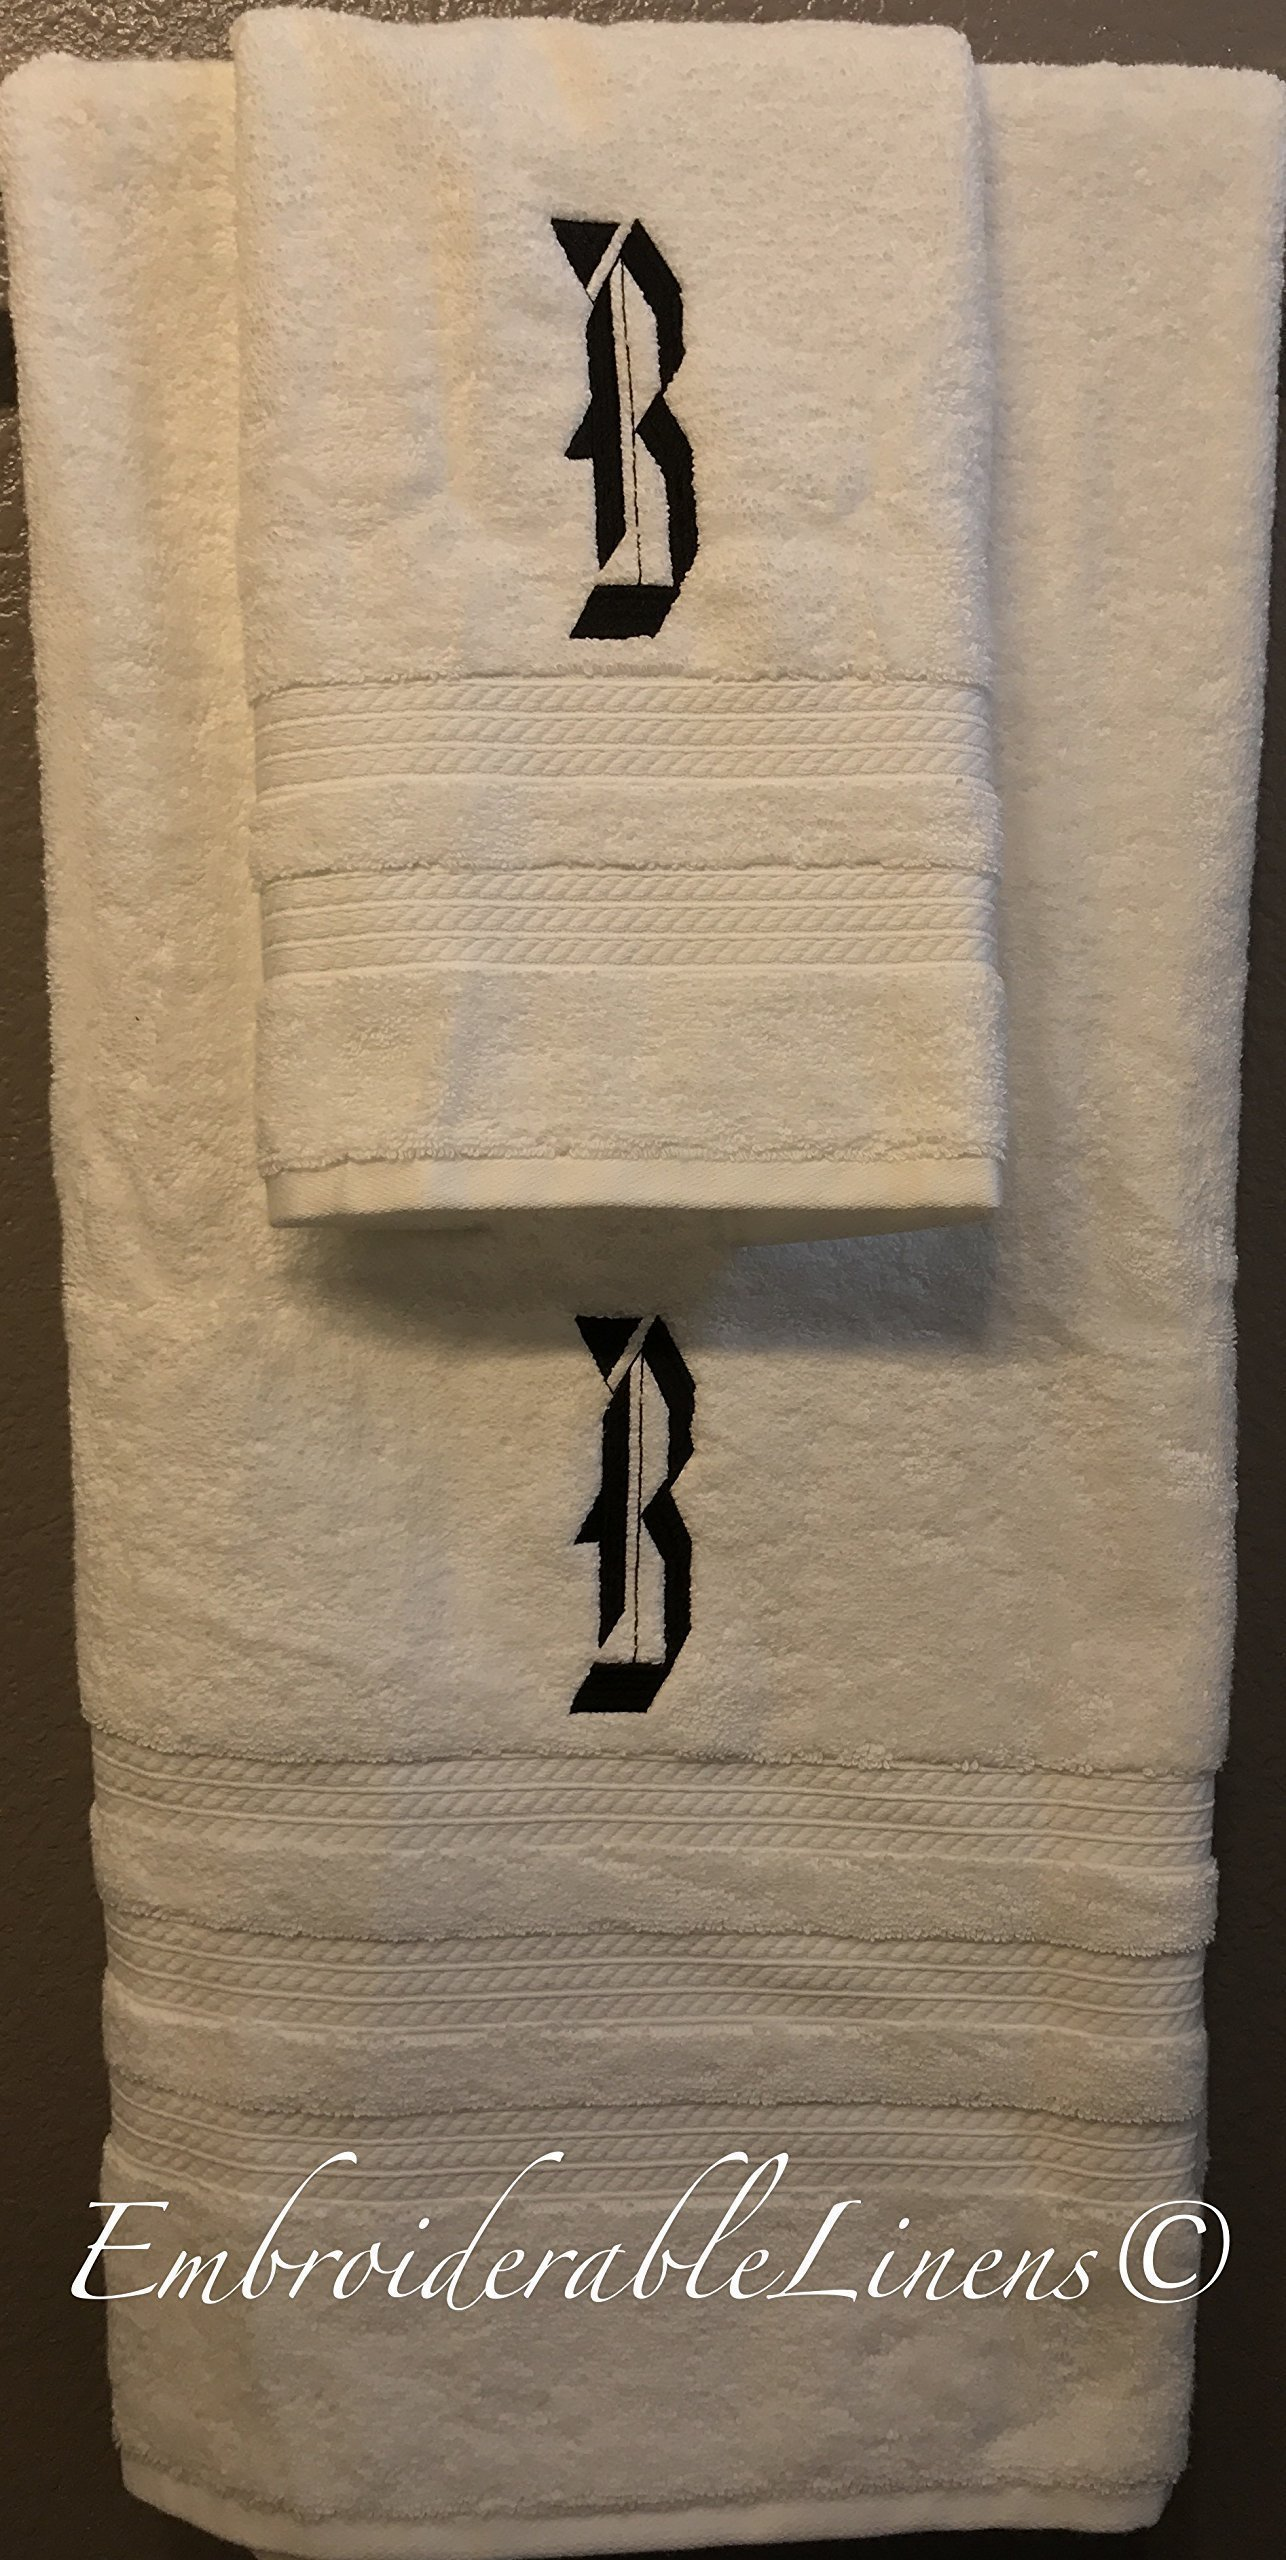 Premium Oversized Plush Luxury Monogramed Towel Set by EmbroiderableLinens© Your choice of color towel set, font for monogram, and color for embroidery!